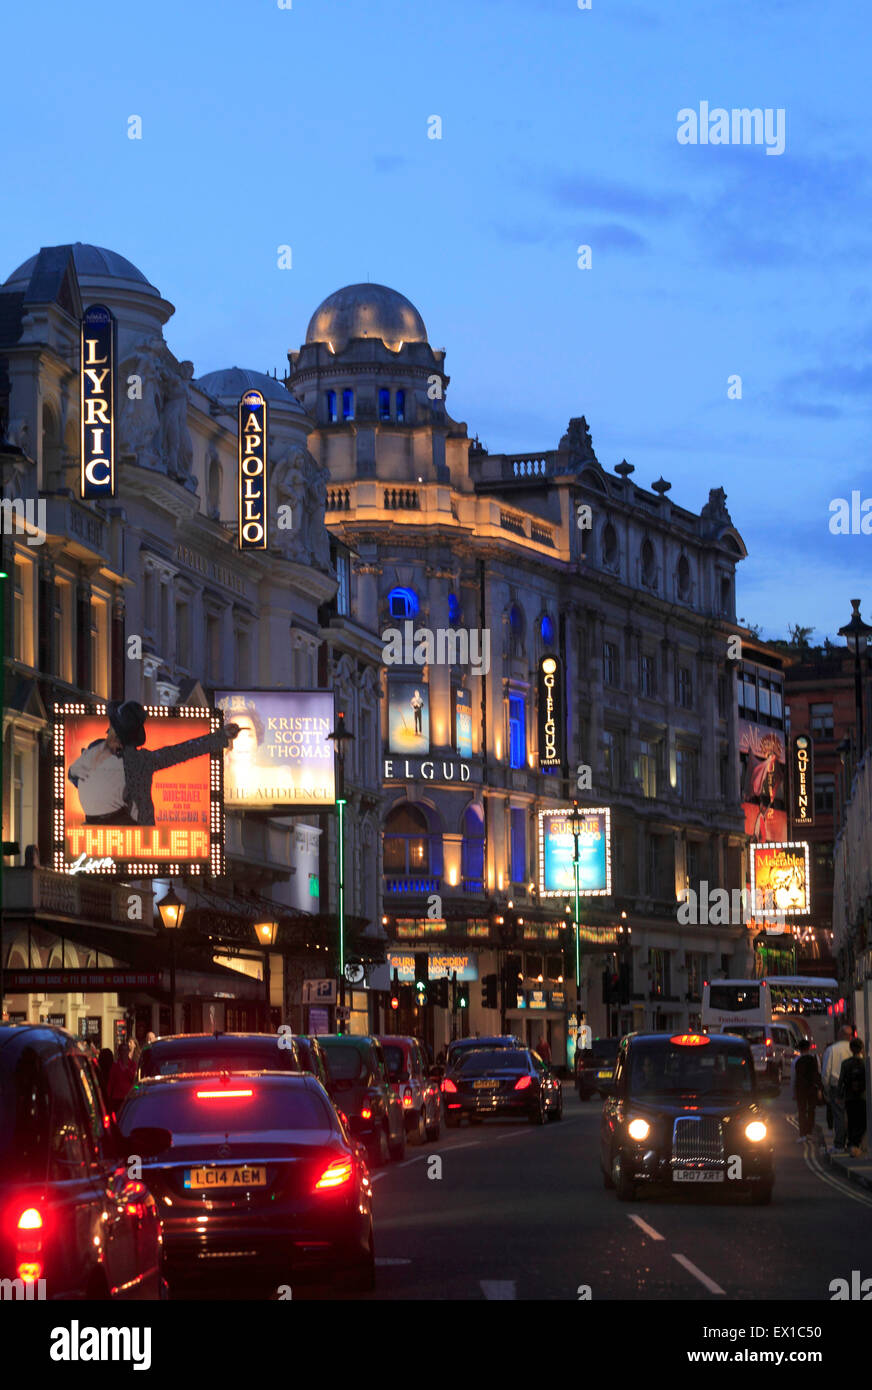 .Shaftesbury Avenue Theatres in Londons West End. - Stock Image